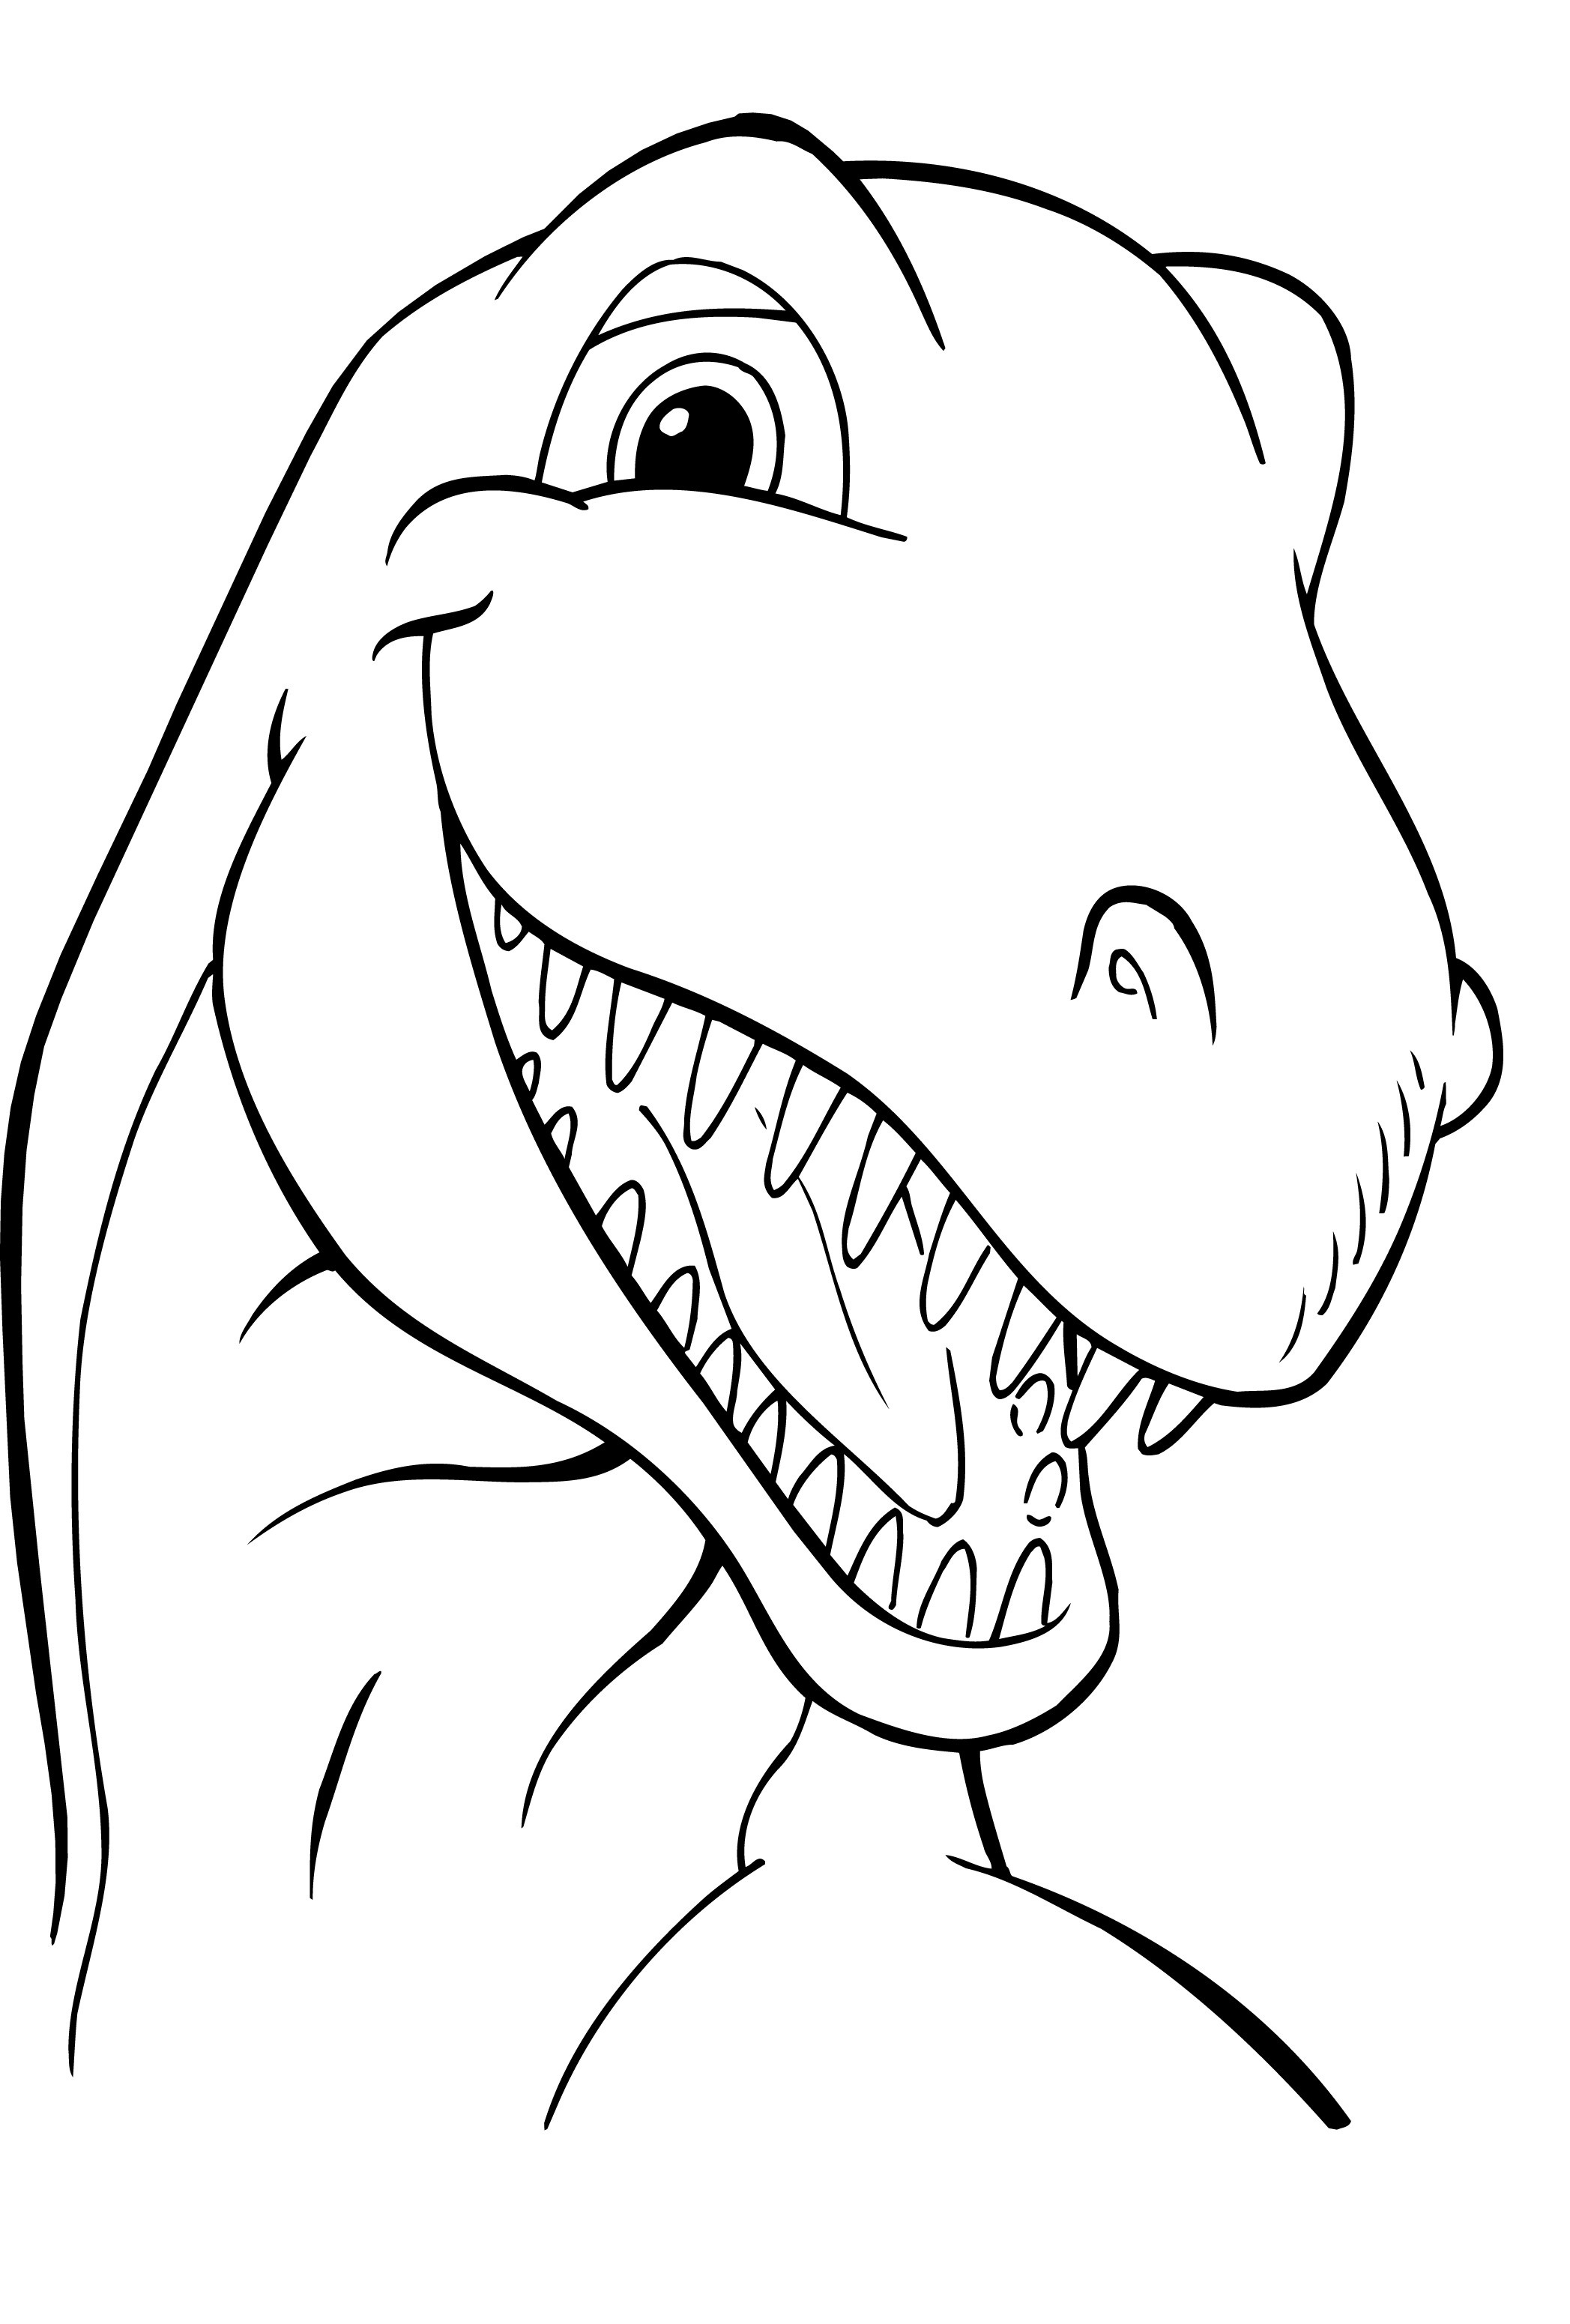 Free Printable Dinosaur Coloring Pages For Kids Coloring Sheets Free To Print